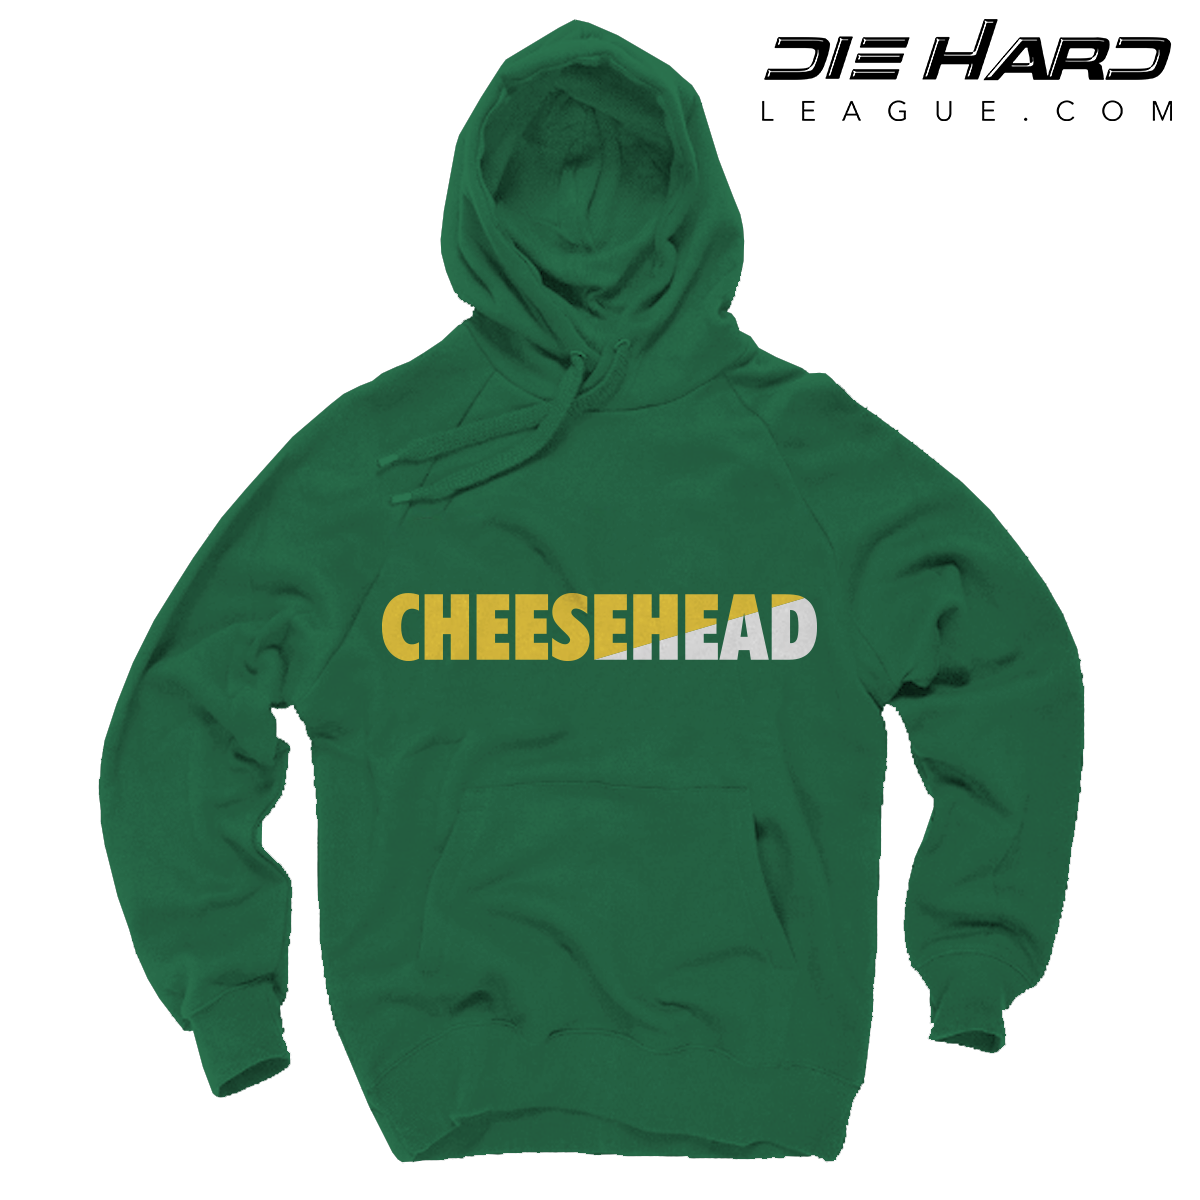 Shop. Home Green Bay Packers Shop Packers Sweaters Green Bay Packers Hoodie  ... 0d0027d38